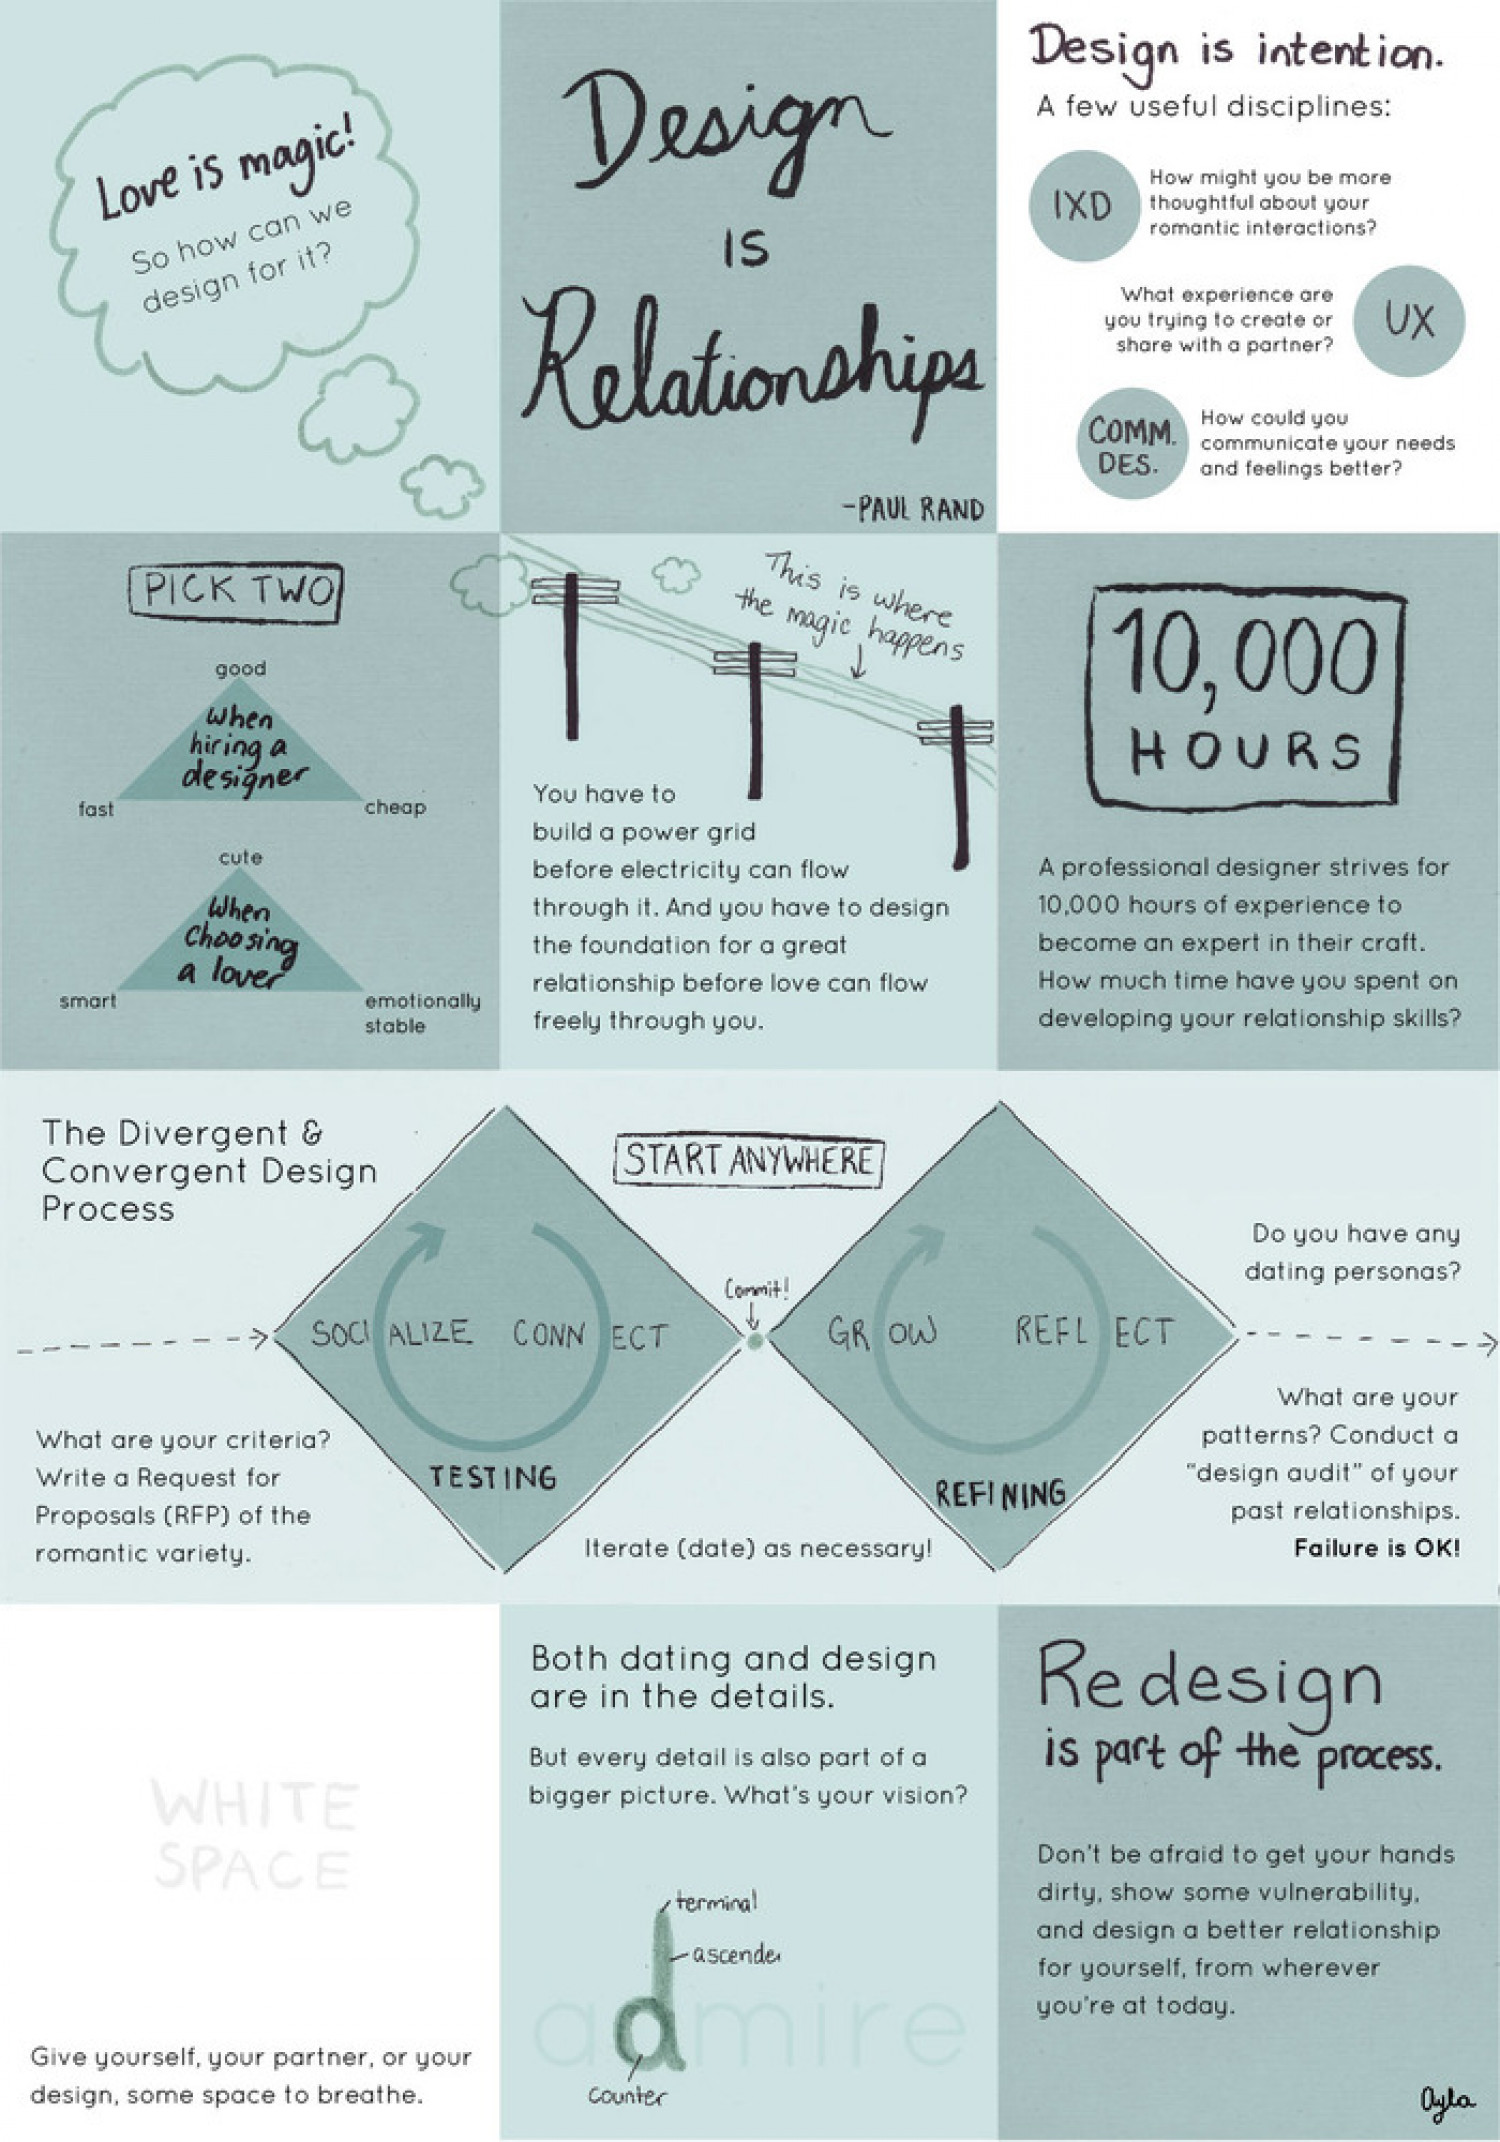 Relationship by Design Infographic